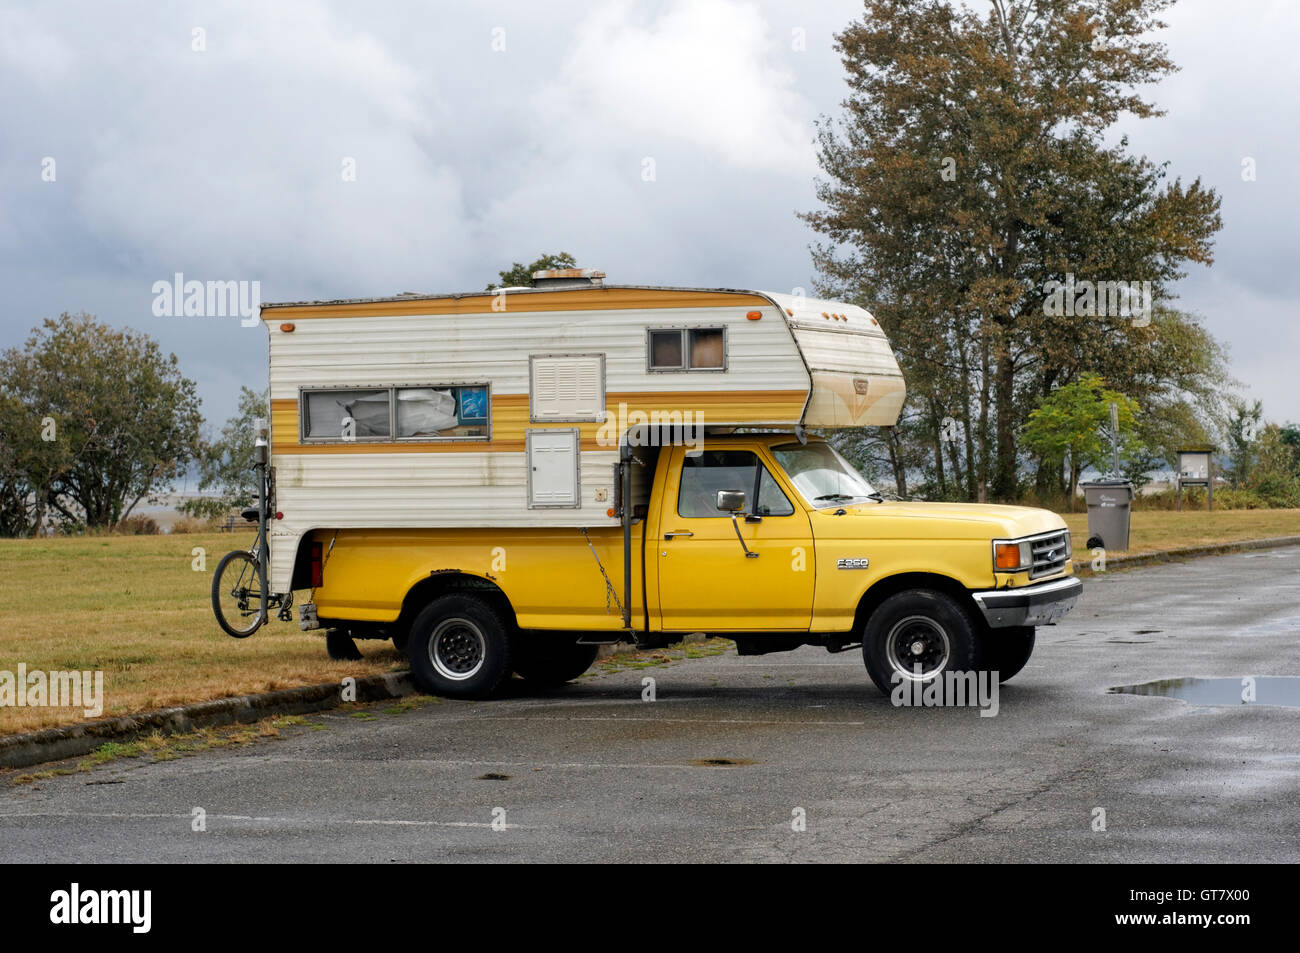 hight resolution of parked 1990 s yellow ford f250 pickup truck with a camper in vancouver british columbia